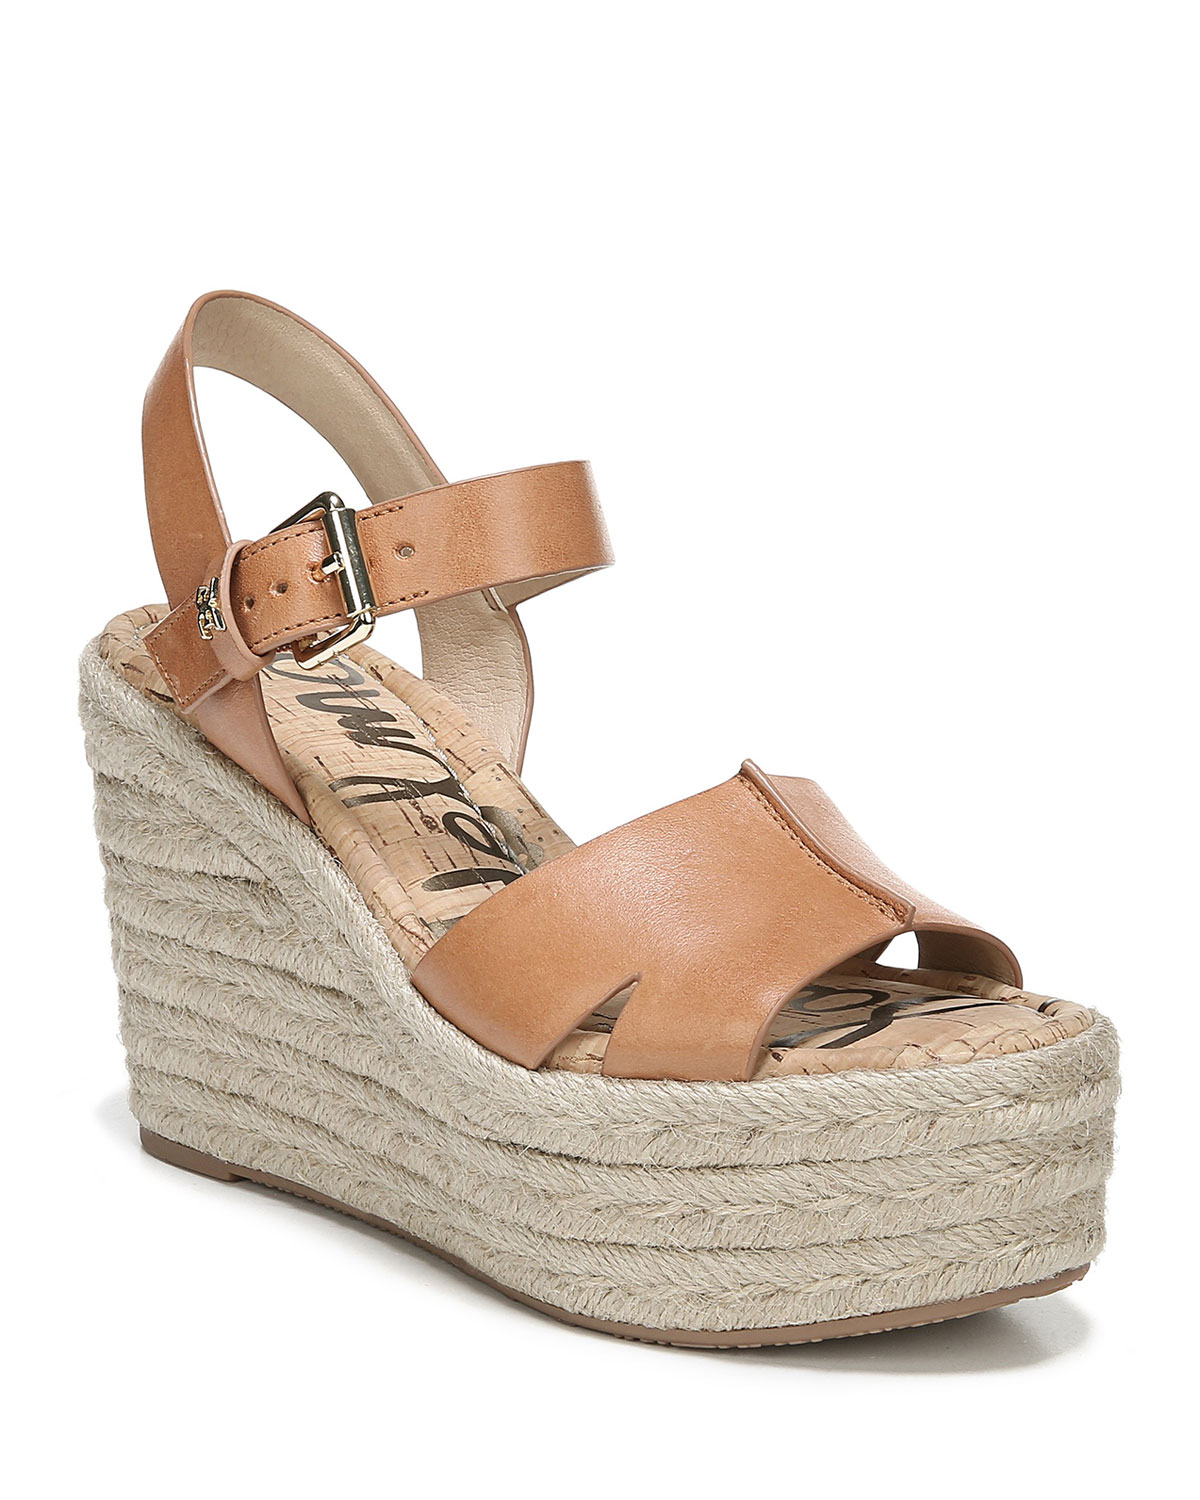 c7bcb58709b Sam Edelman Maura Leather Platform Espadrille Sandals